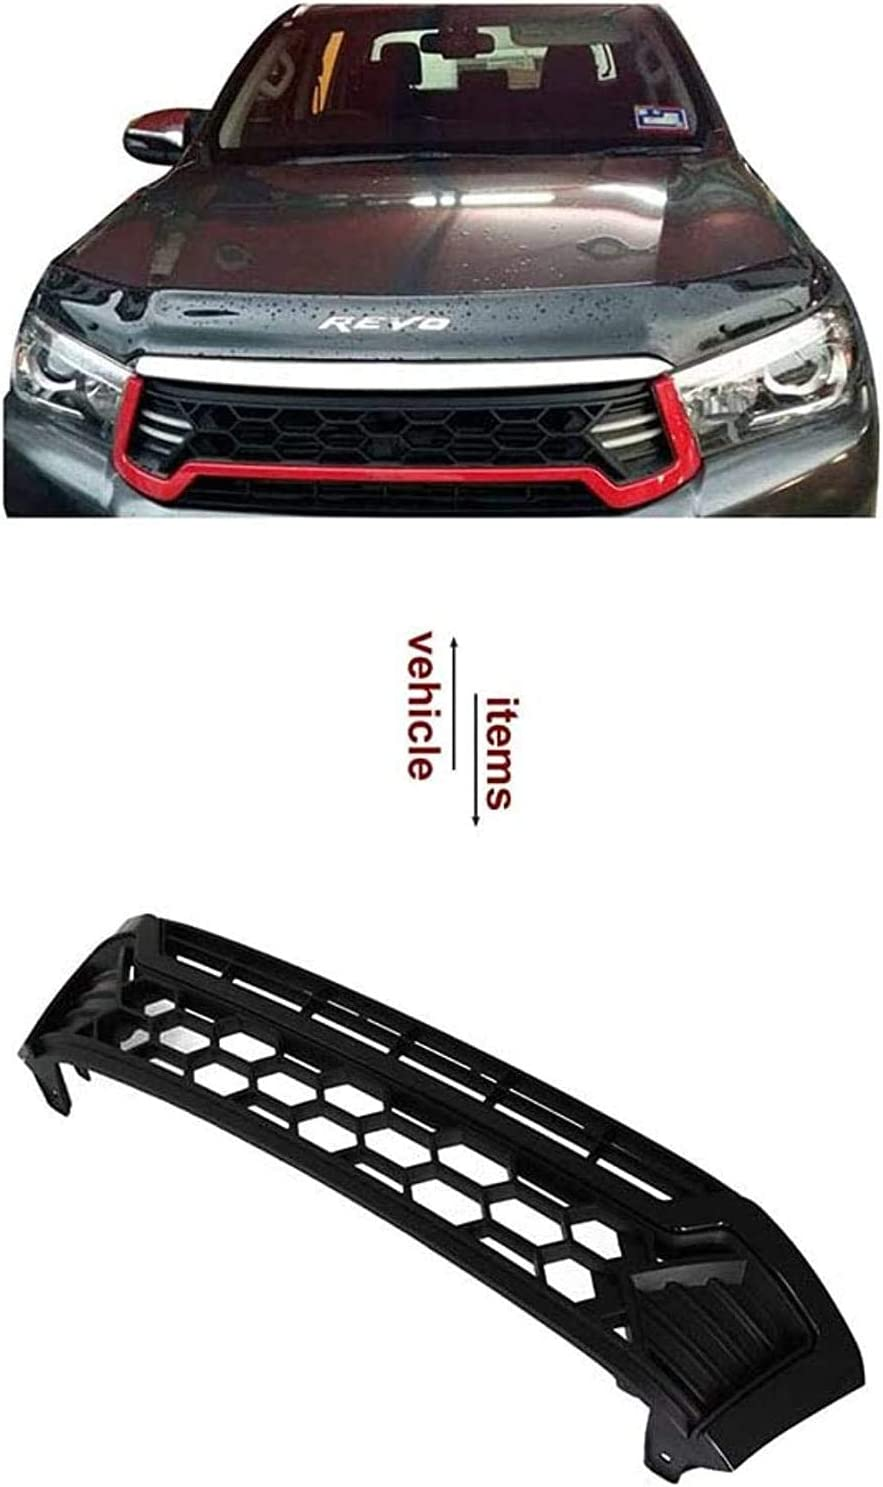 Red ACYCY Sport Grille For Toyot-A Hilux Revo 2016-2017 Part 2018 2019 2020 Led Raptor Grille Black With Led